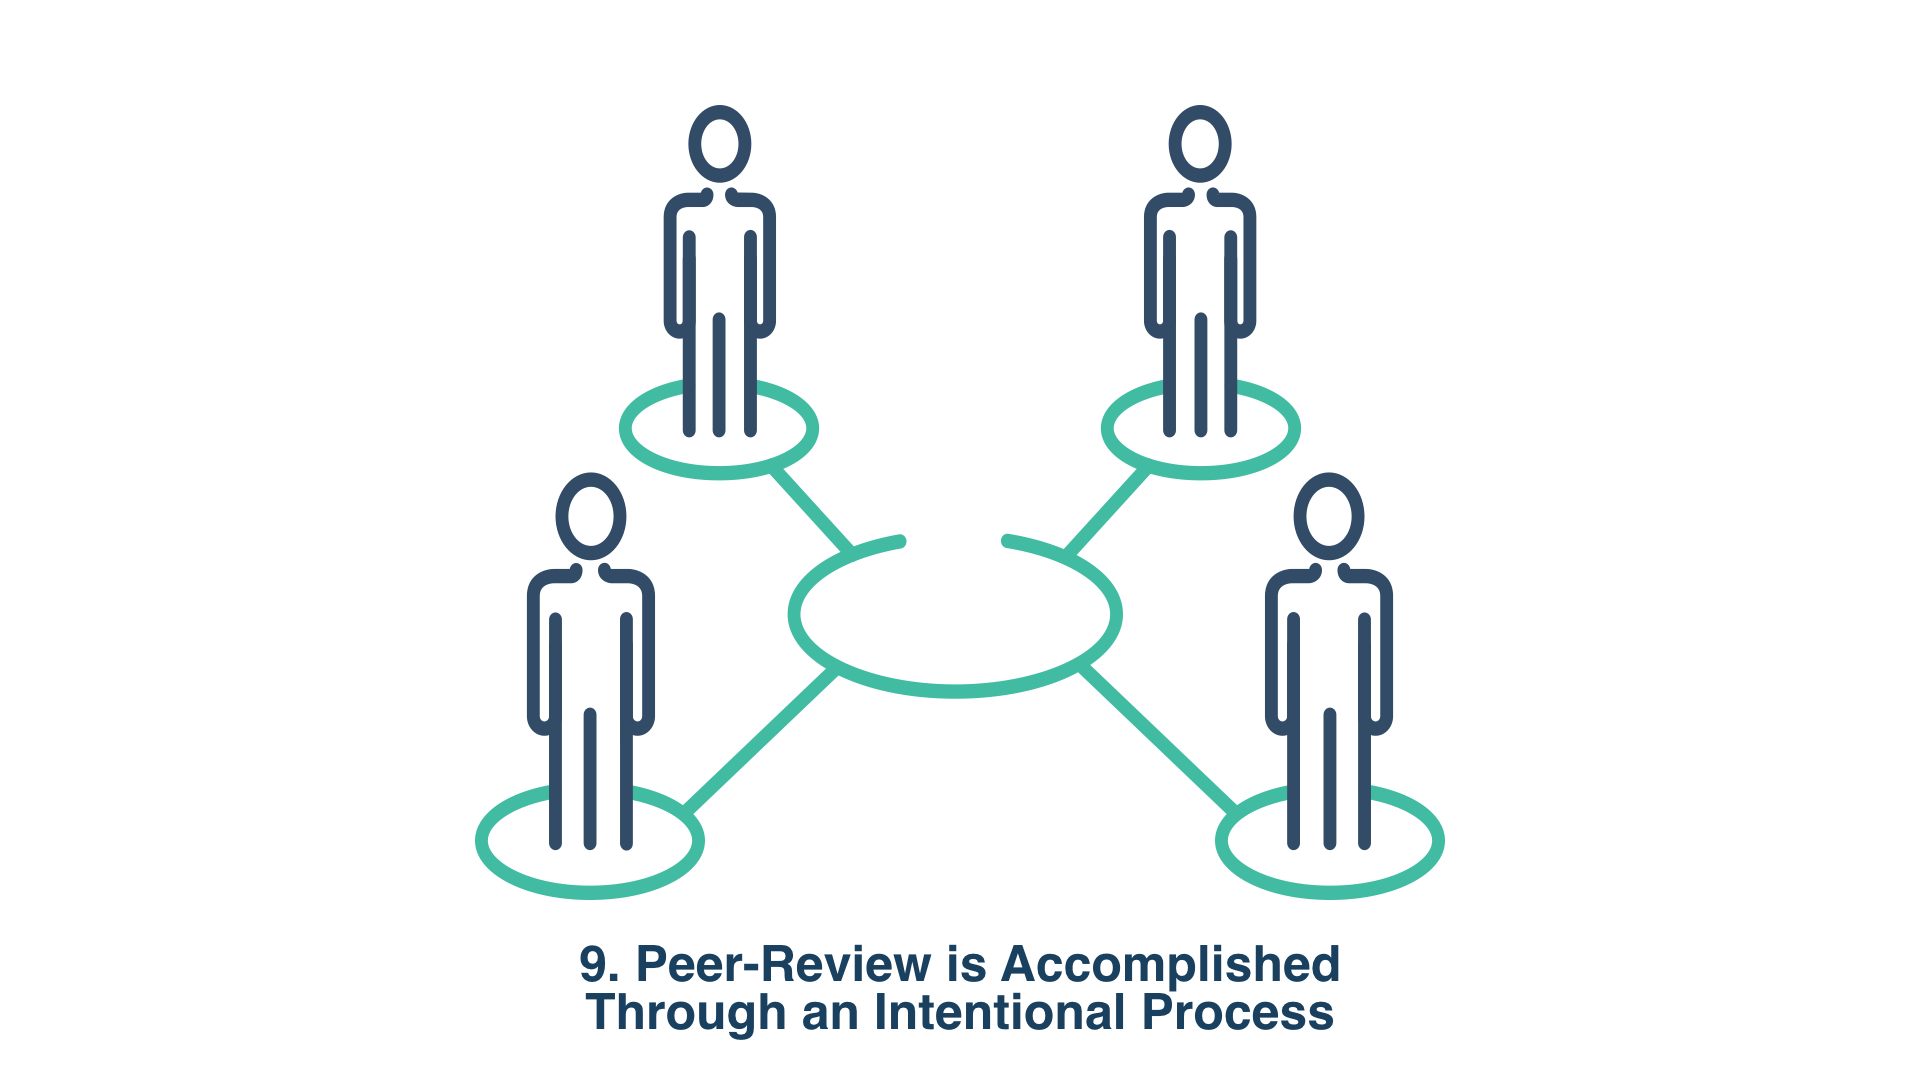 9. Peer-Review is Accomplished Through an Intentional Process